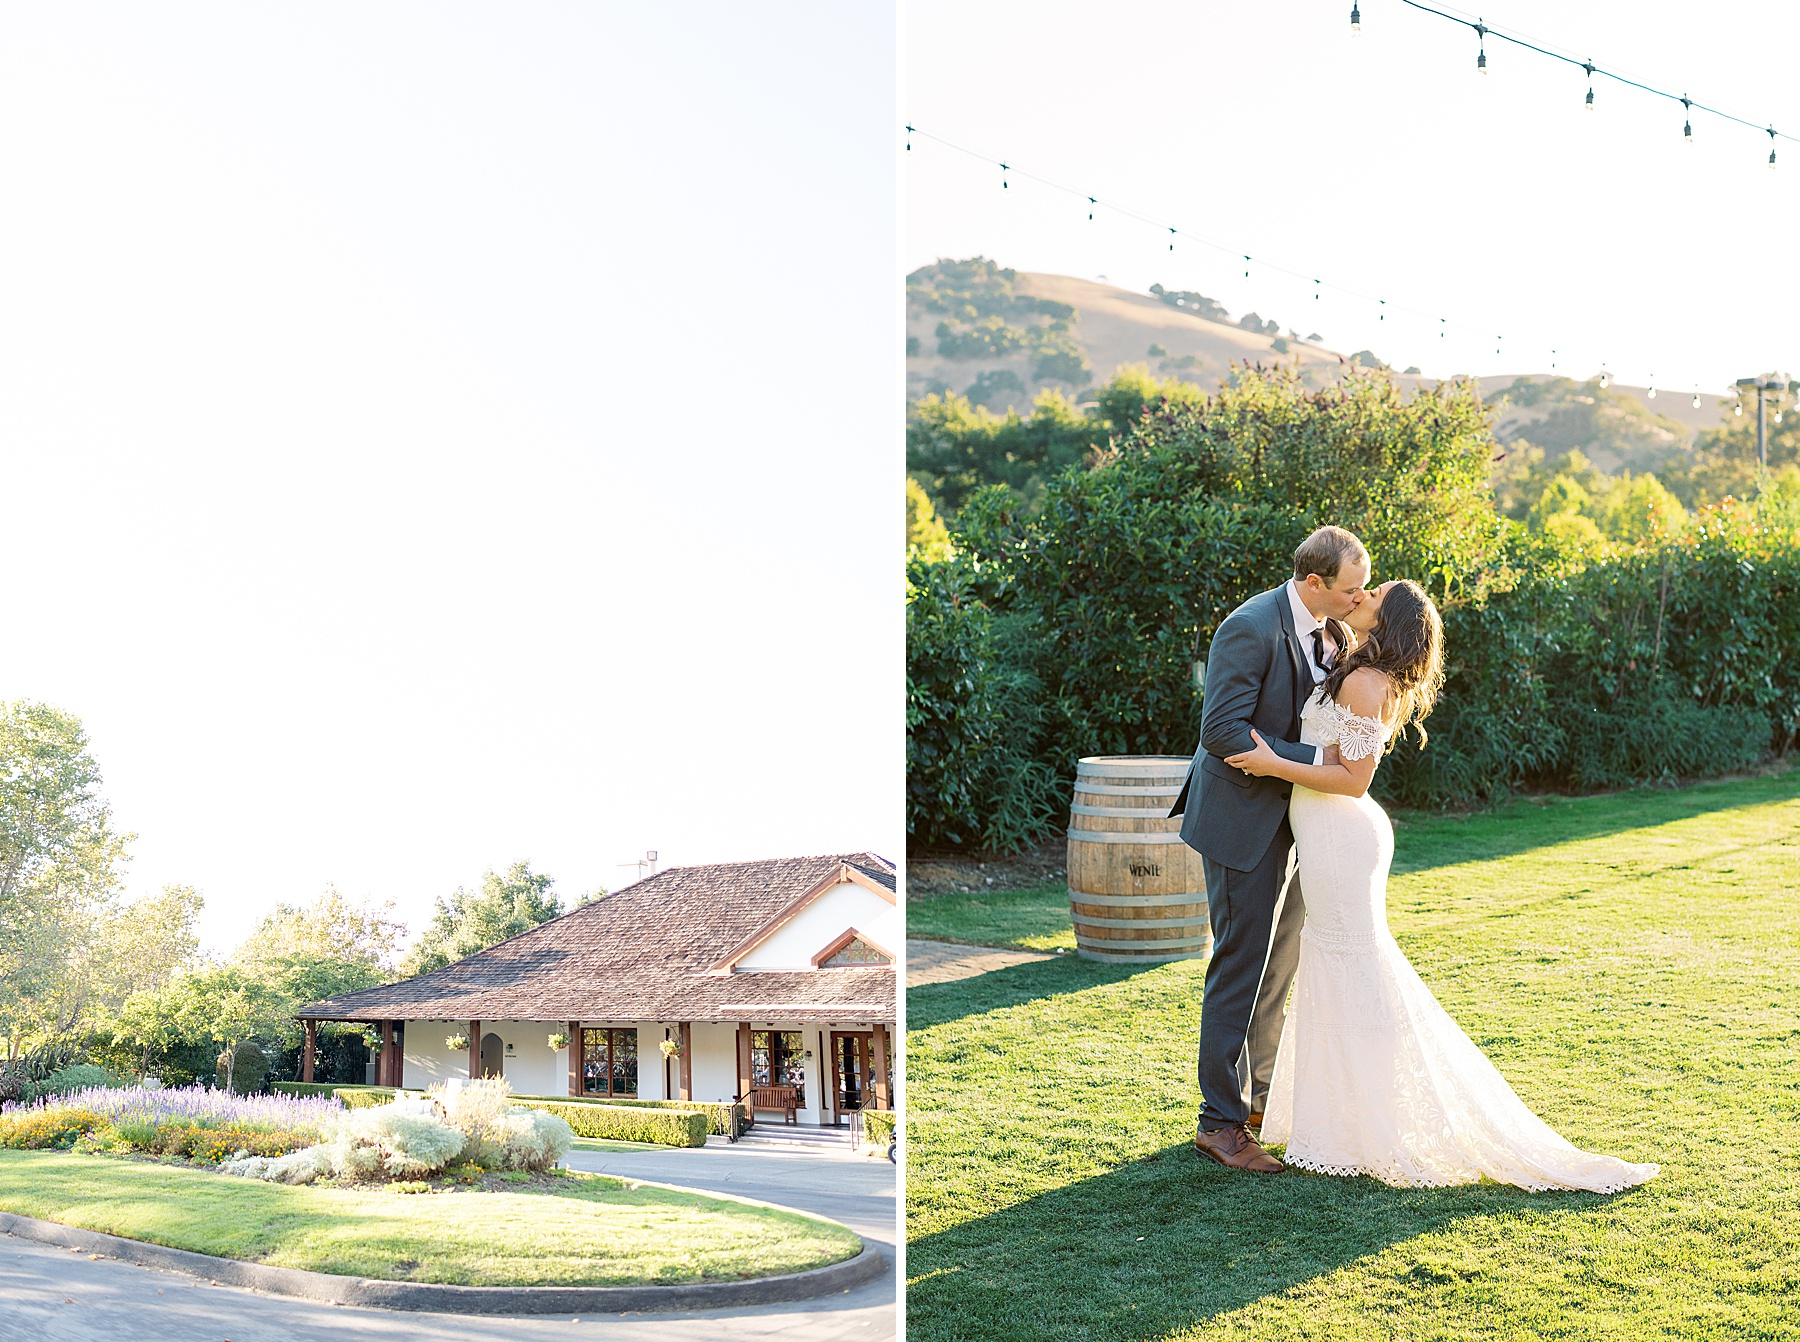 Wente Wedding with A Tropical Color Palette - Ashley & Mike - Featured on Inspired by This - Ashley Baumgartner_0053.jpg